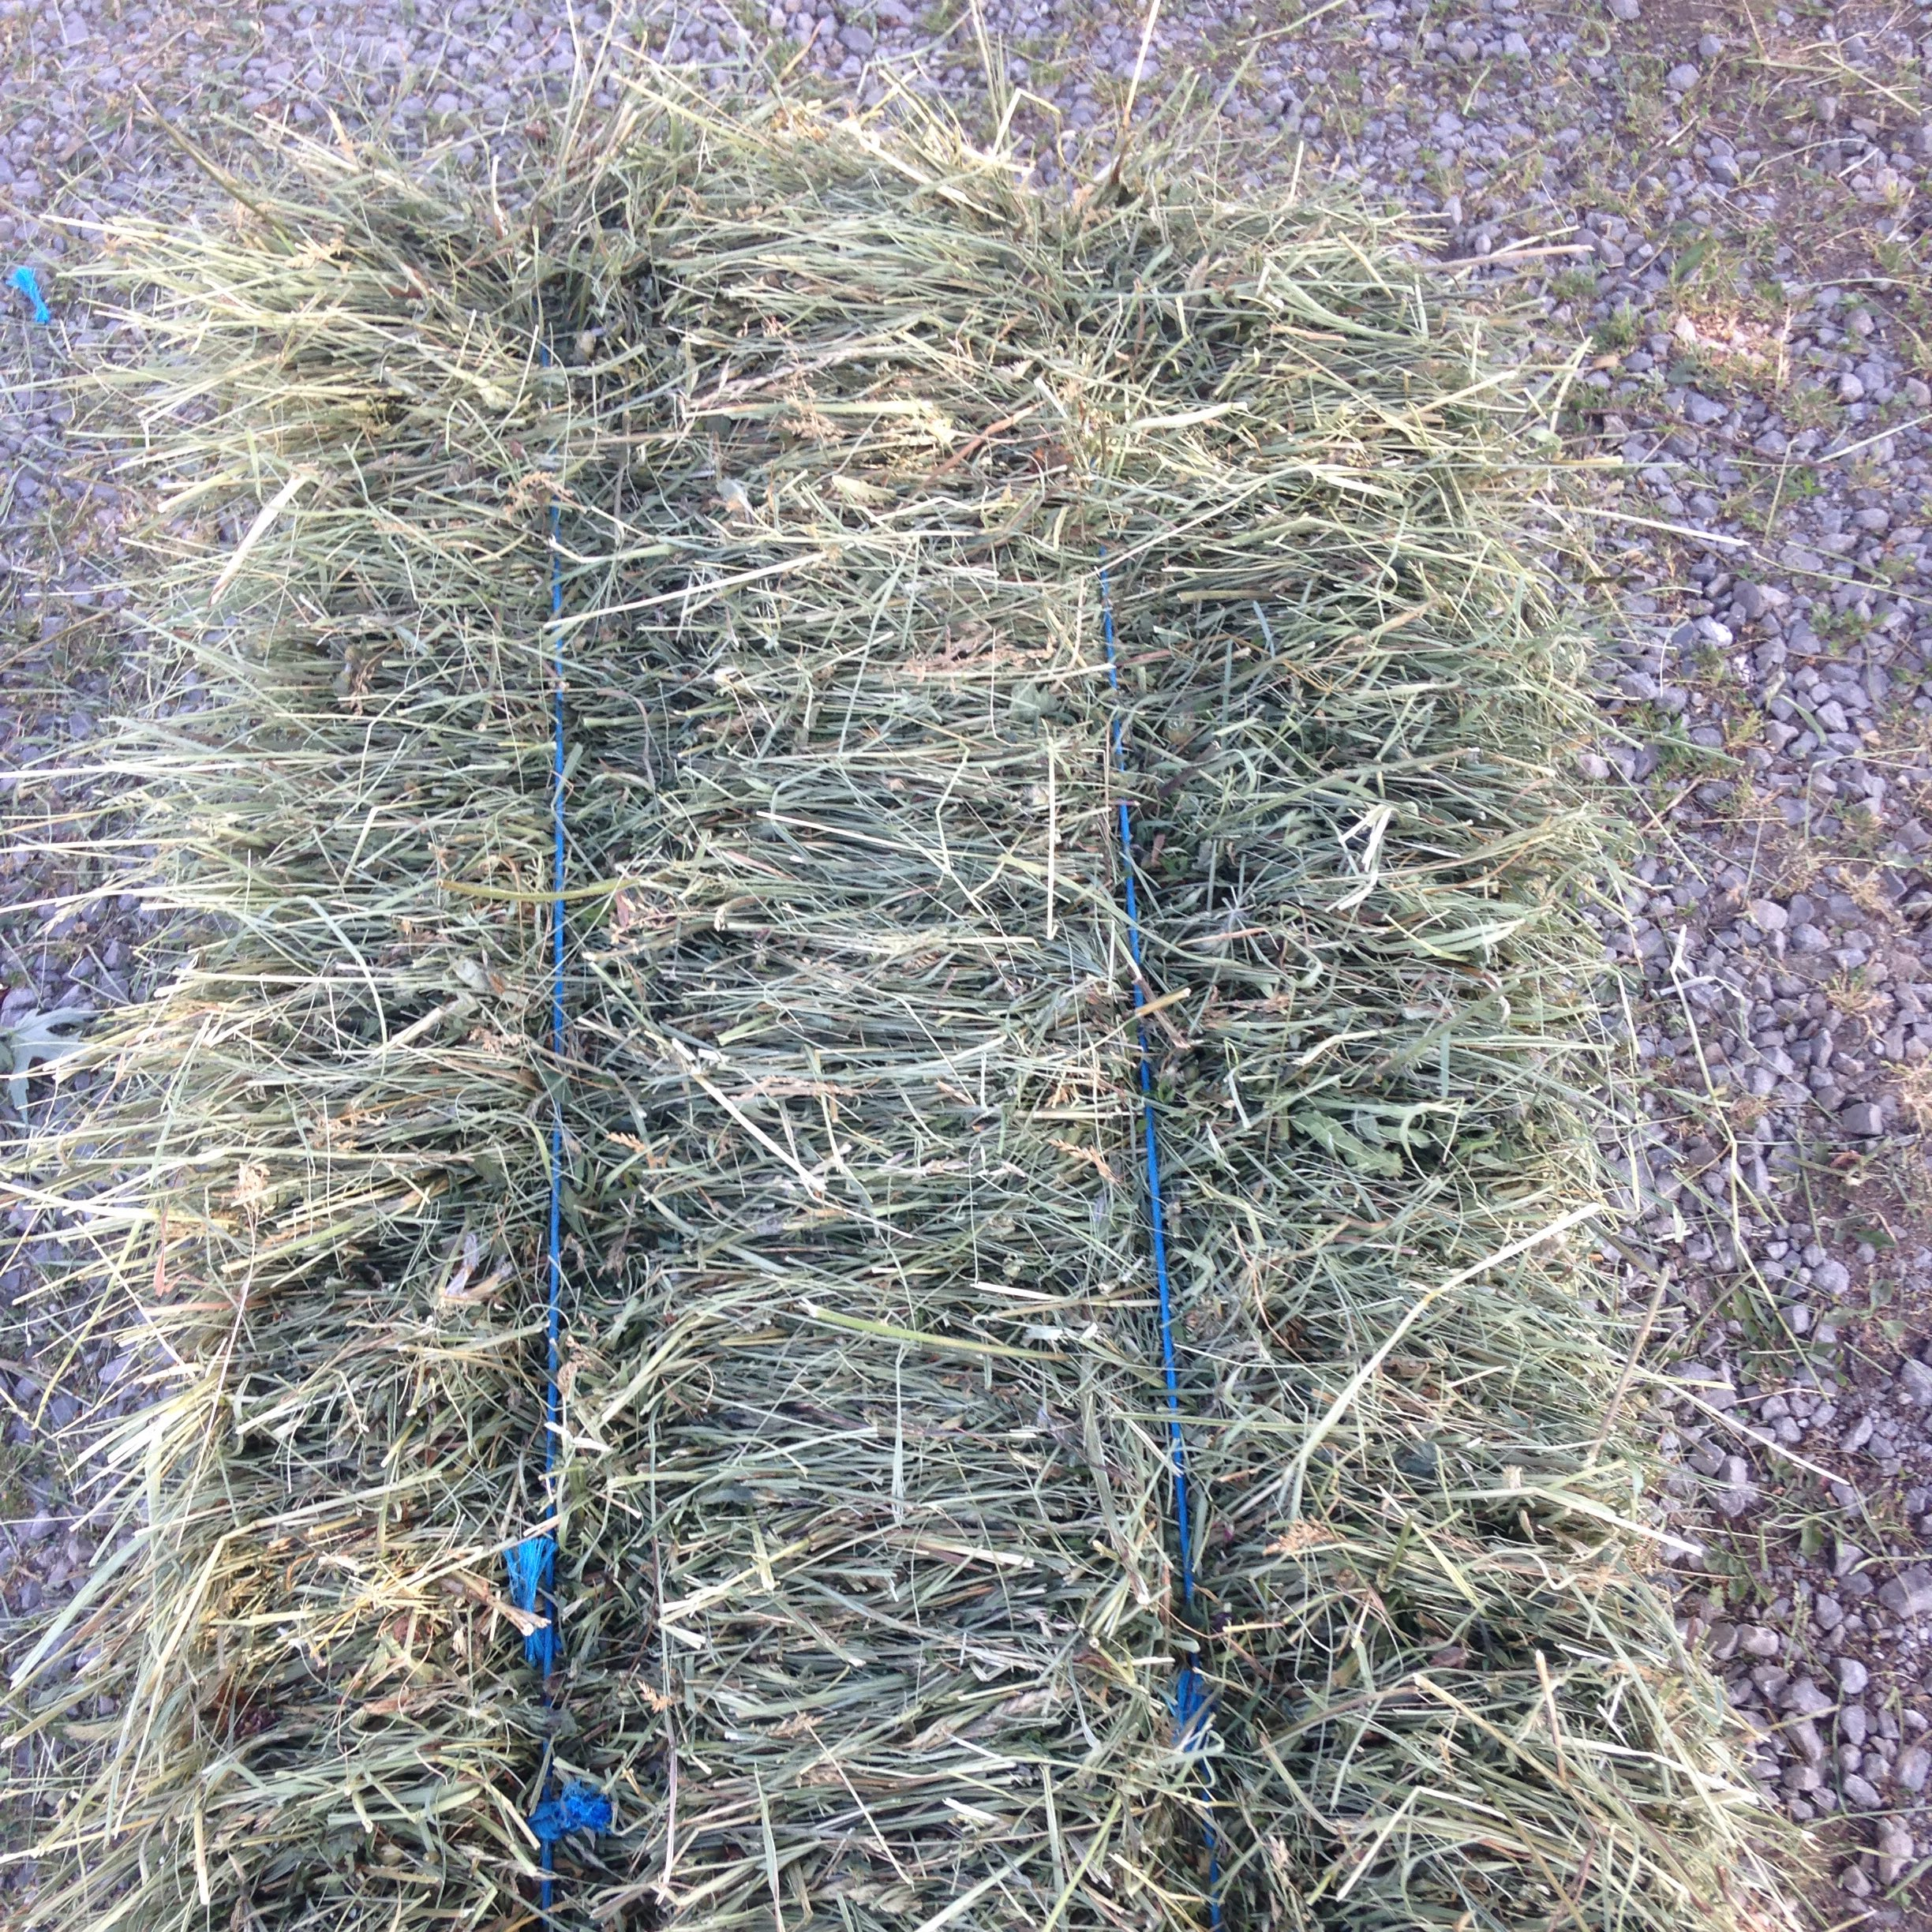 Orchard grass hay pictures Just how many wives does Jacob Zuma have. - The South African